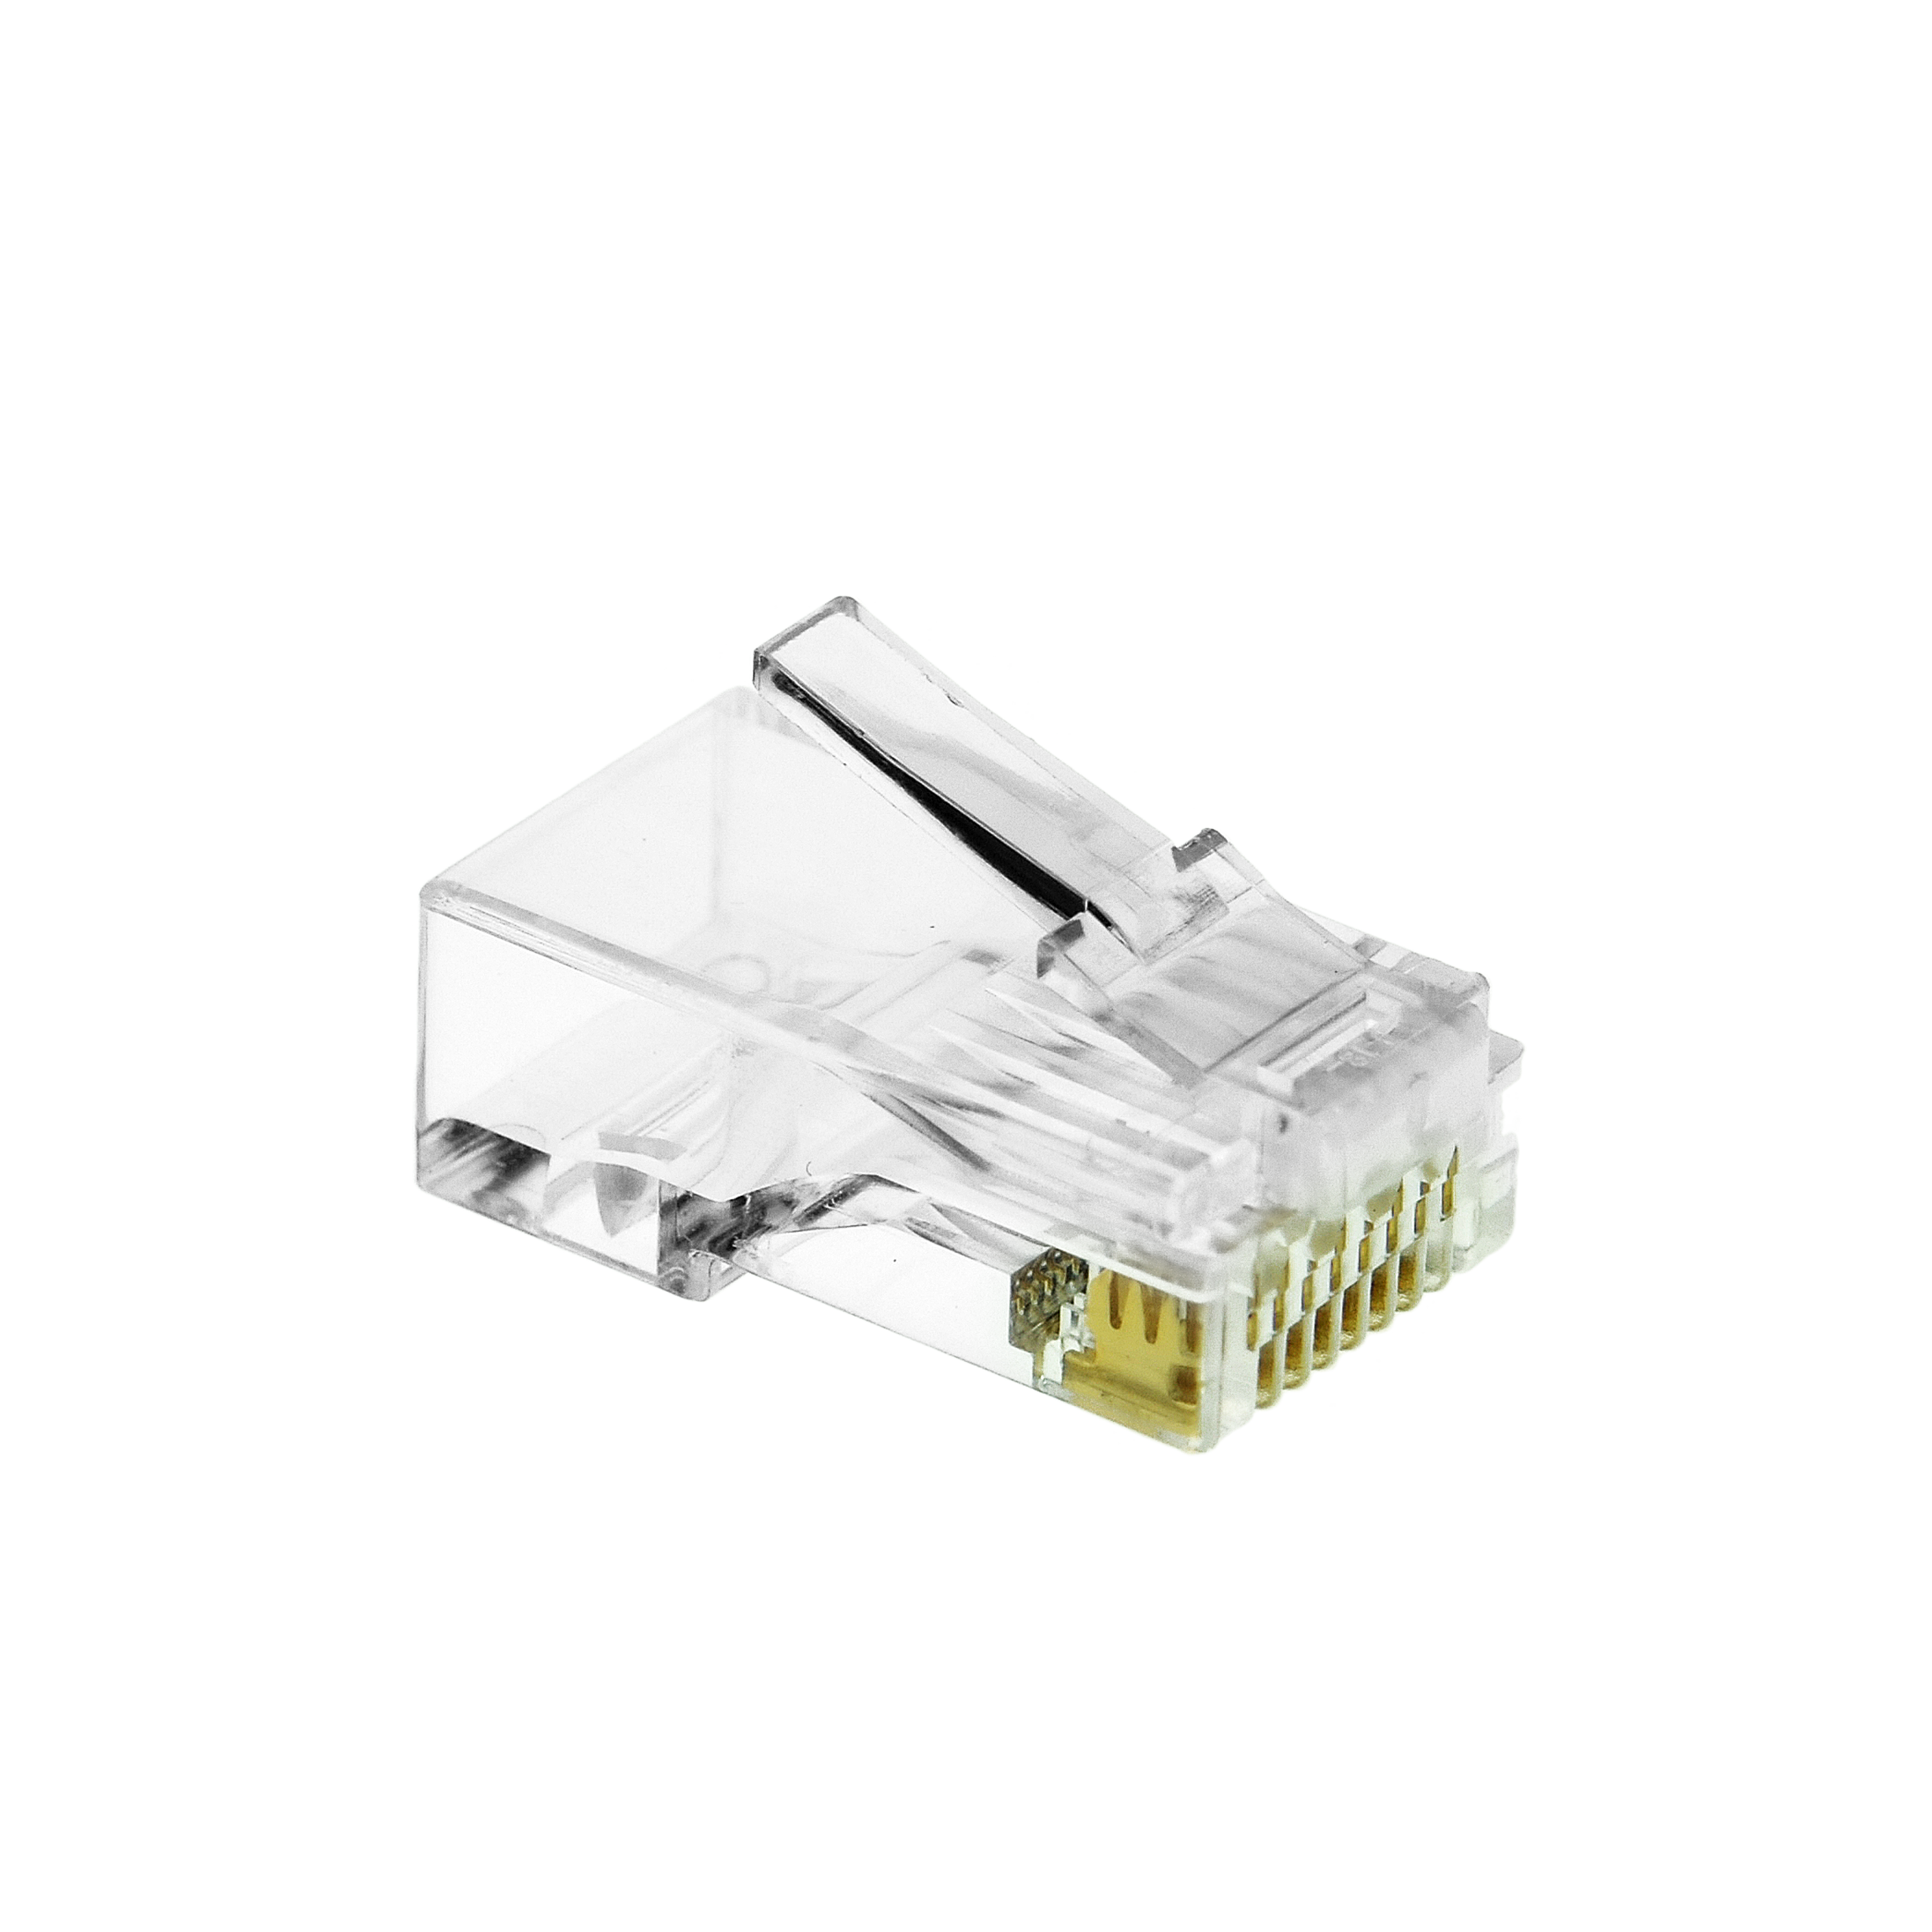 Shop New Cat6 Connector Clear Rj45 Plug For Ethernet Cable Wiring 8p8c 50um 100 Pack Part 51p C6 100pk